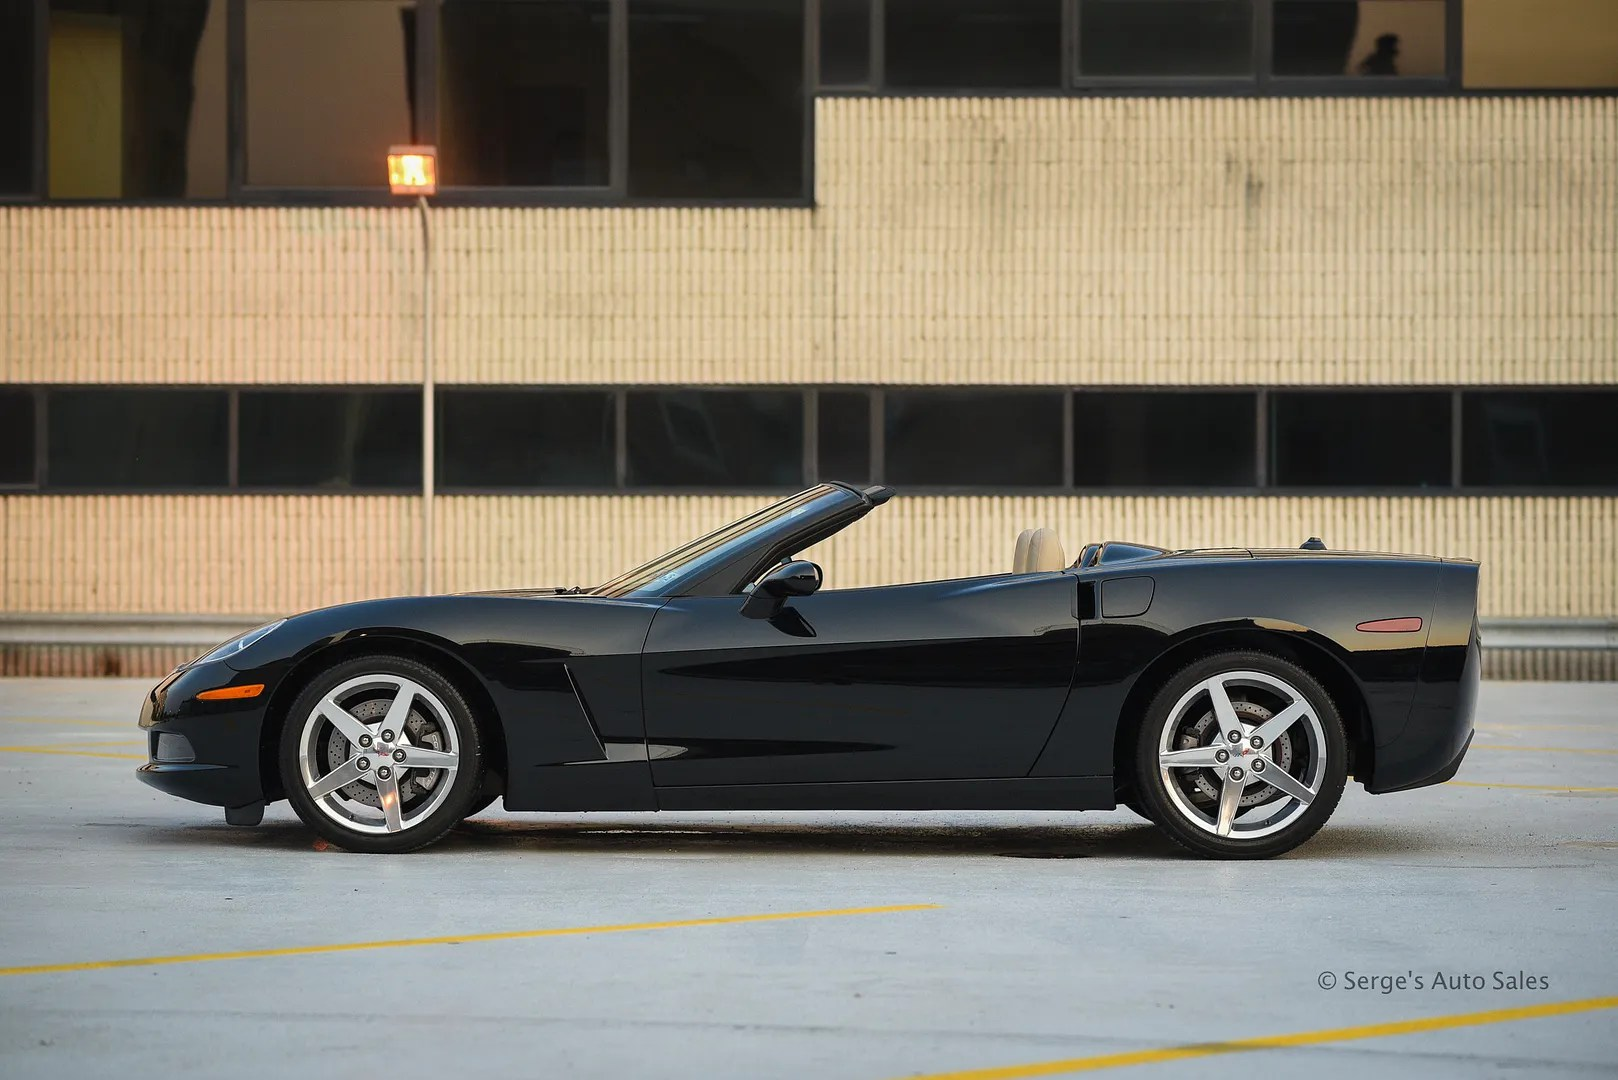 photo 2005-C6-Corvette-Convertible-For-Sale-Scranton-Serges-Auto-Sales-dealer--22_zps5oyilwh3.jpg